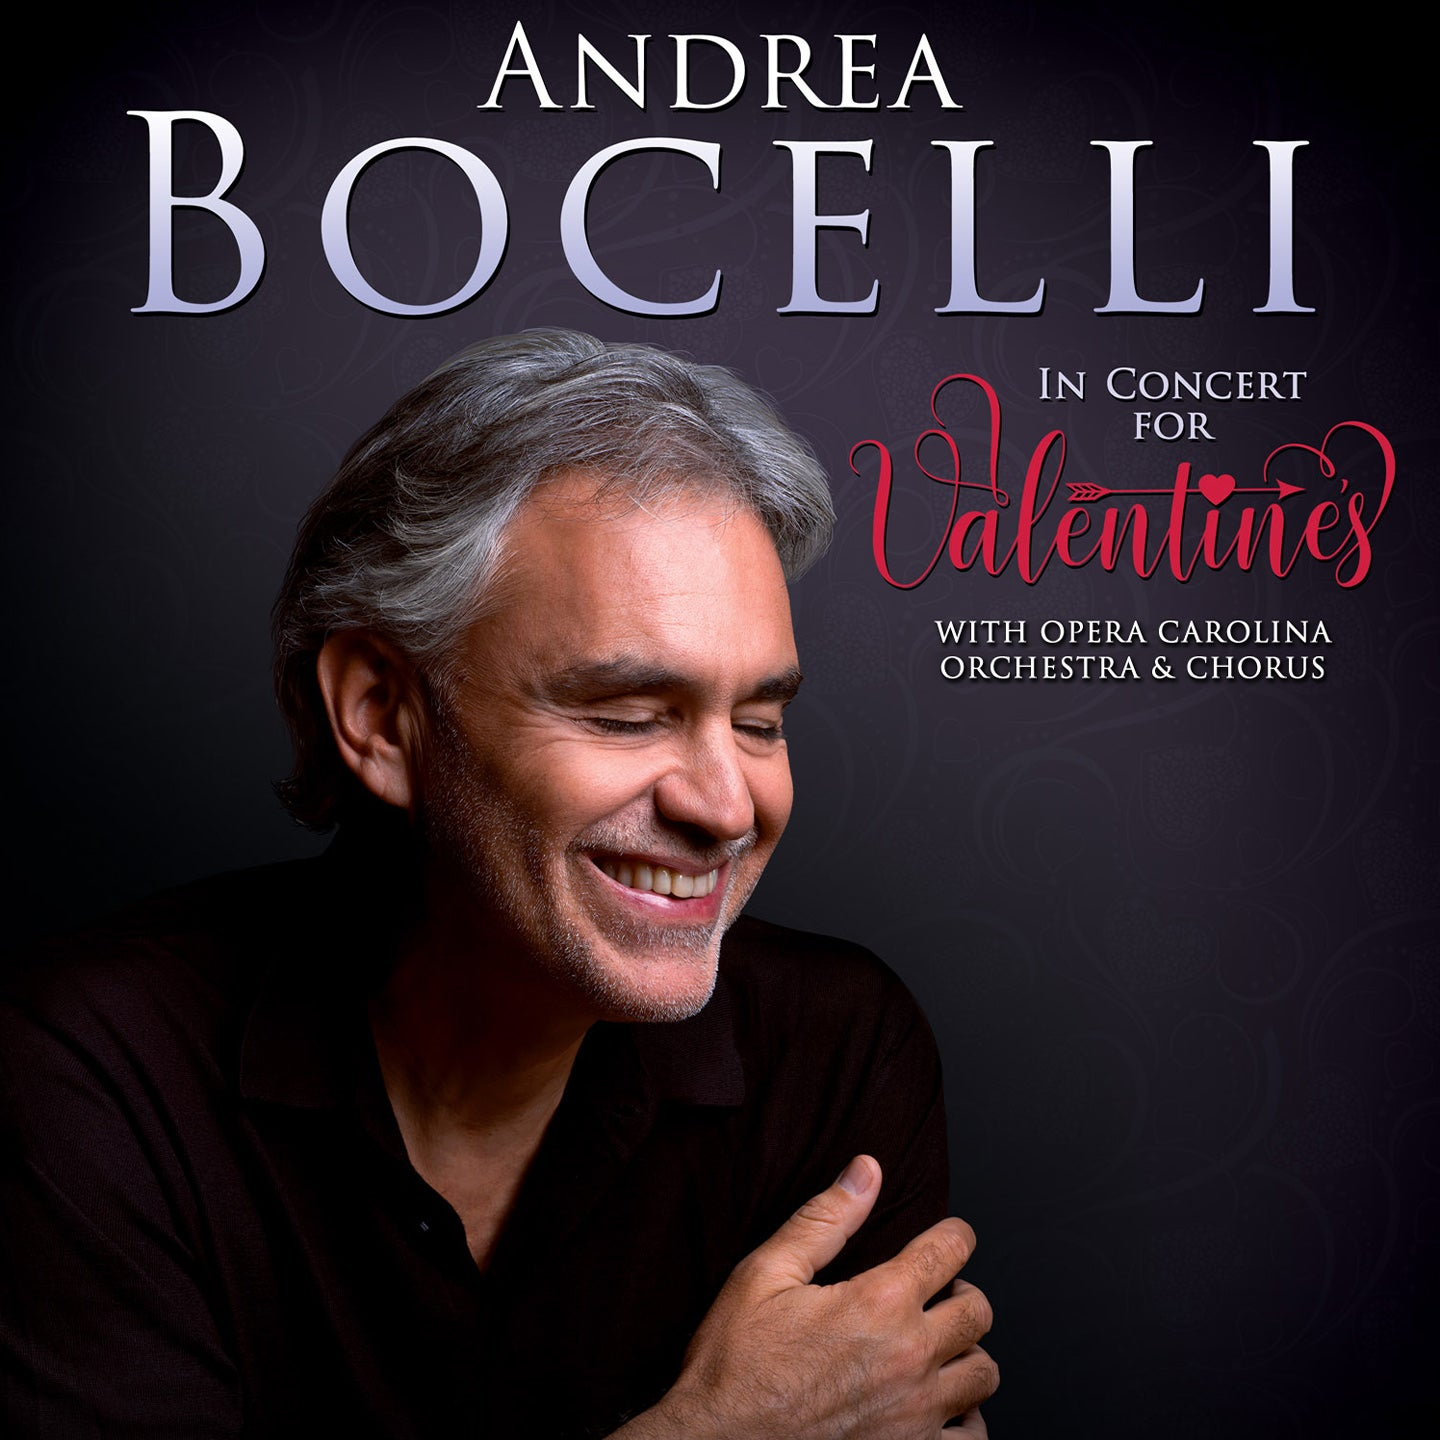 Andrea Bocelli: In Concert for Valentines